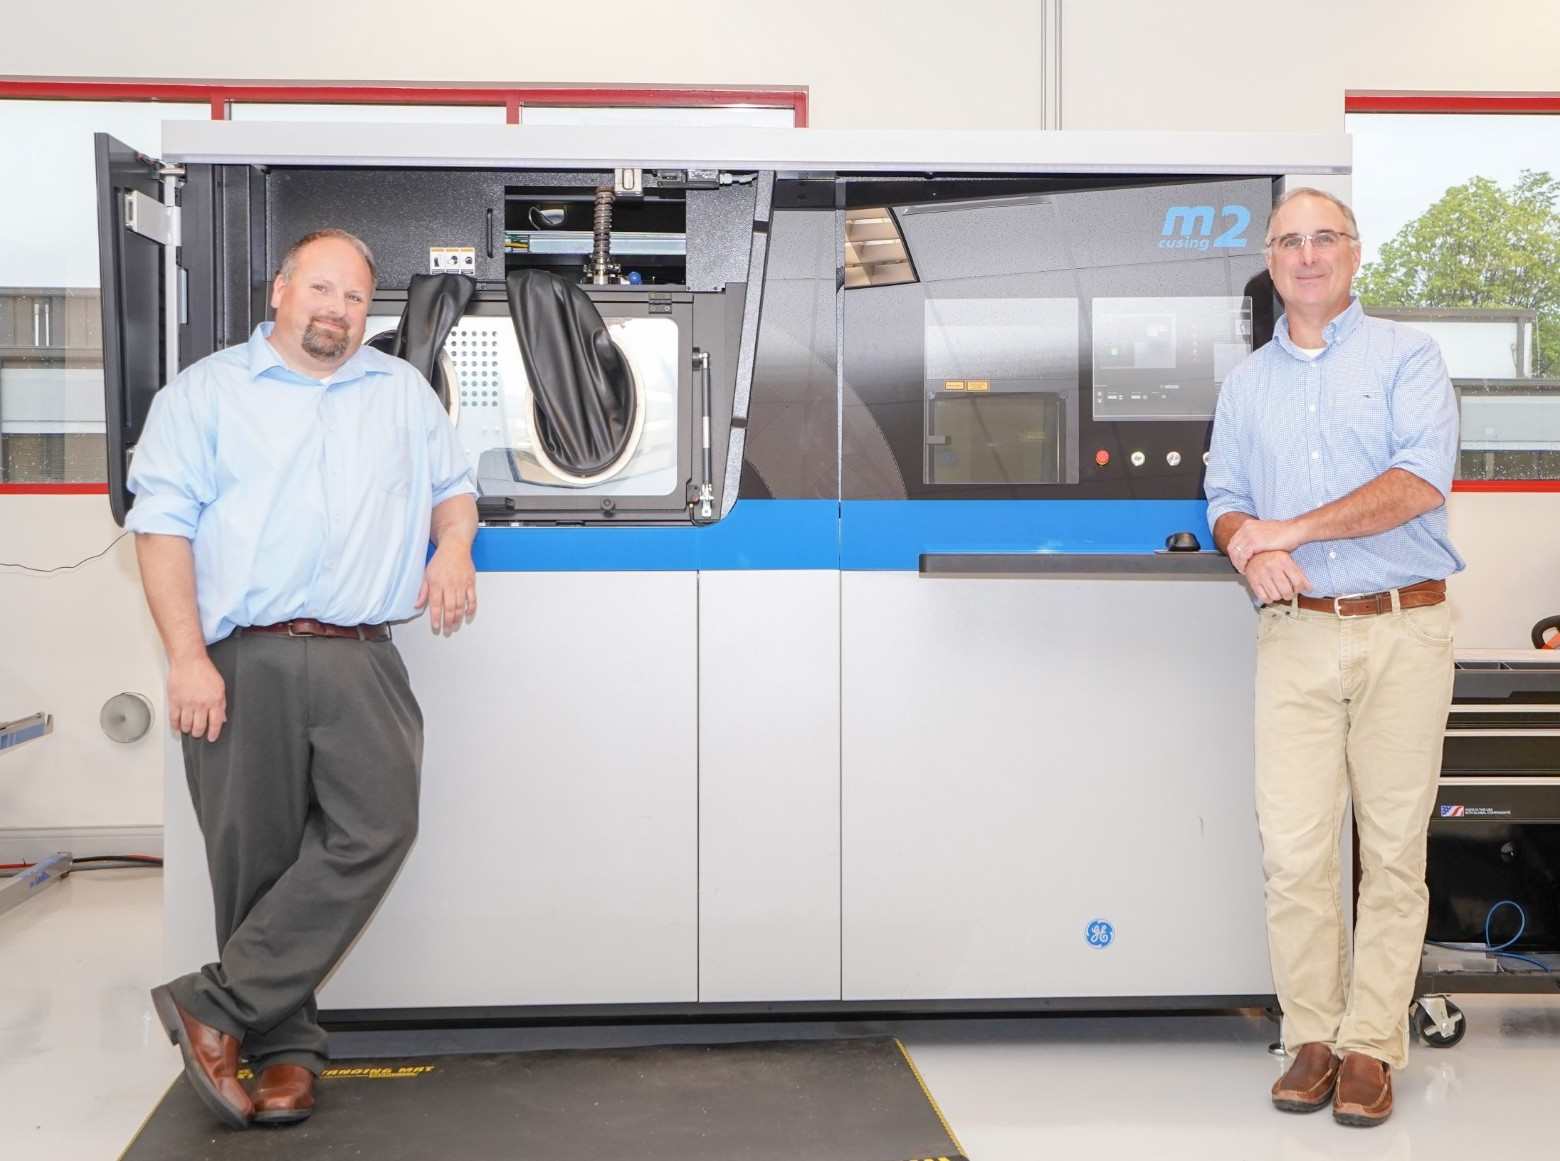 Morris and Rengers (pictured), have started a new company following the acquisition of Morris Technologies. Photo via the EIN press wire.